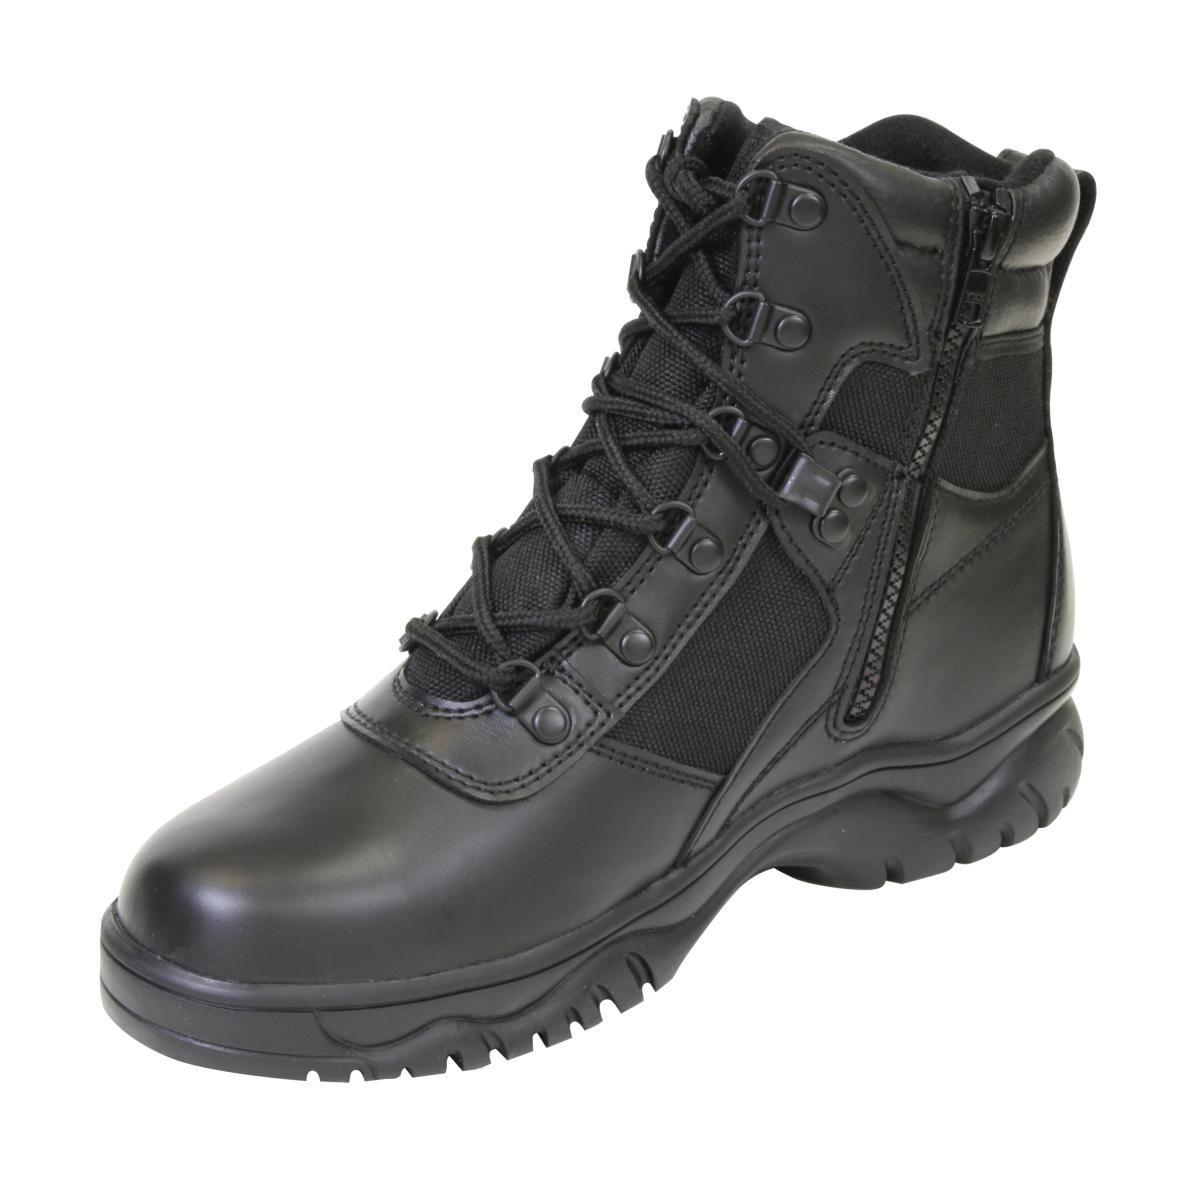 "Rothco 5190 Waterproof 6"" Black Tactical Boot with Side Zipper"